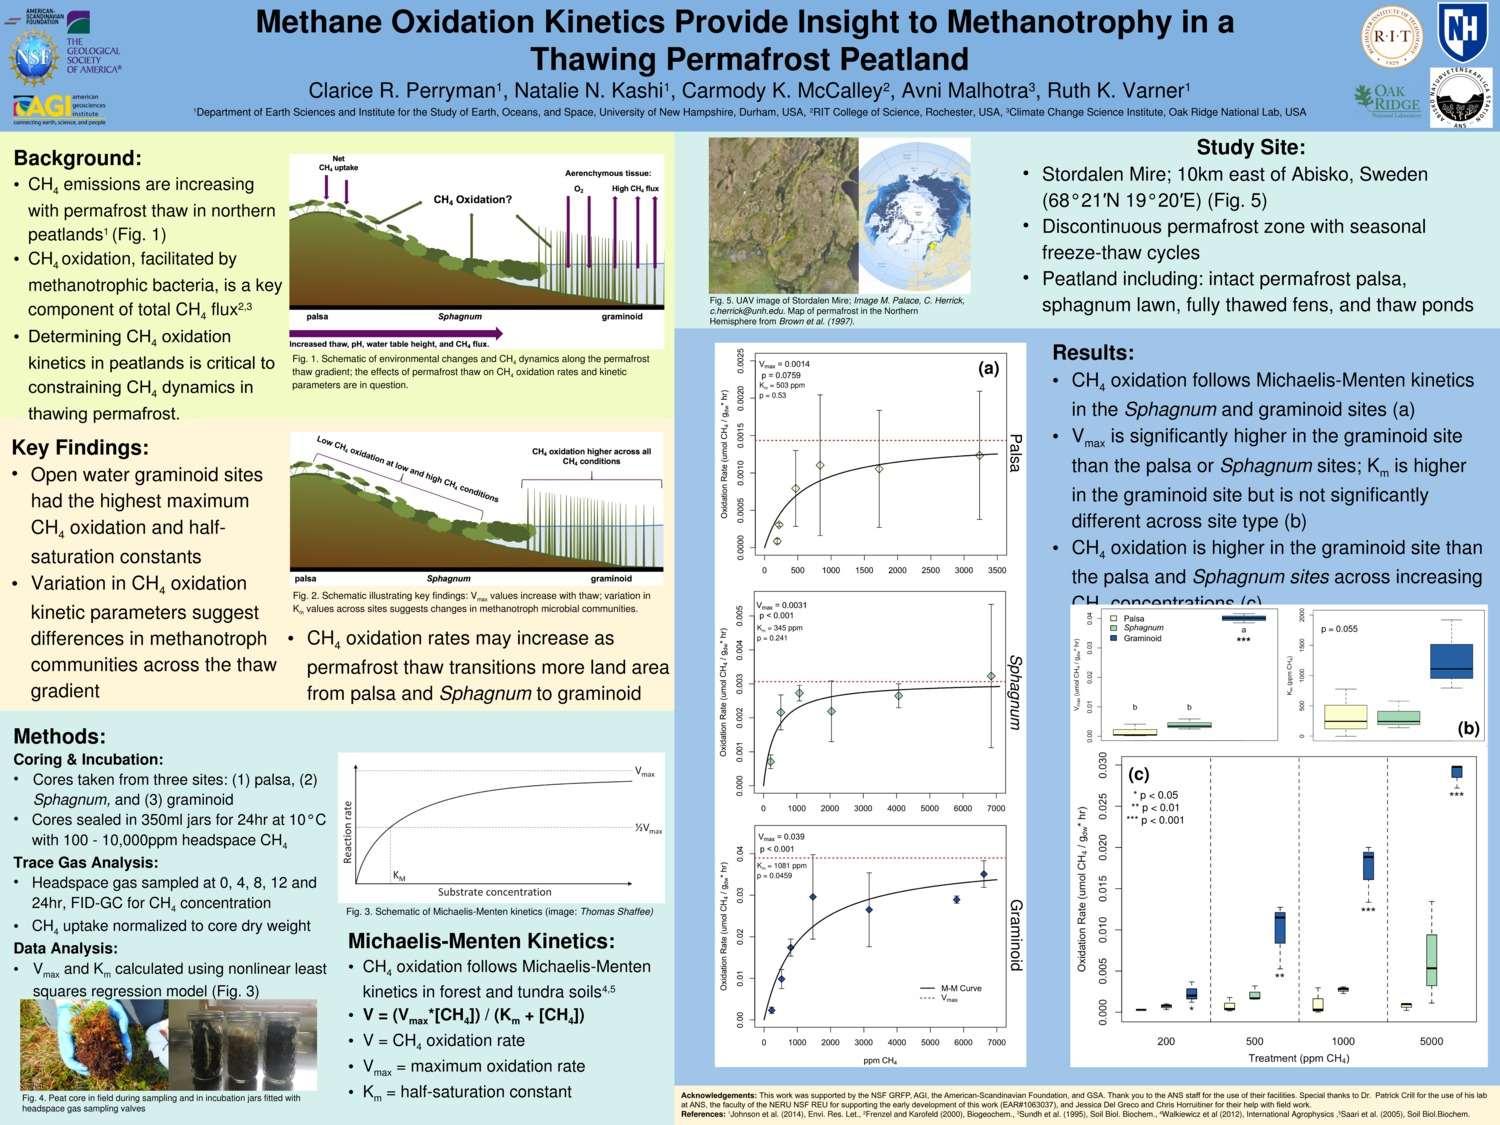 Methane Oxidation Kinetics Provide Insight To Methanotrophy In A  Thawing Permafrost Peatland by crp1006